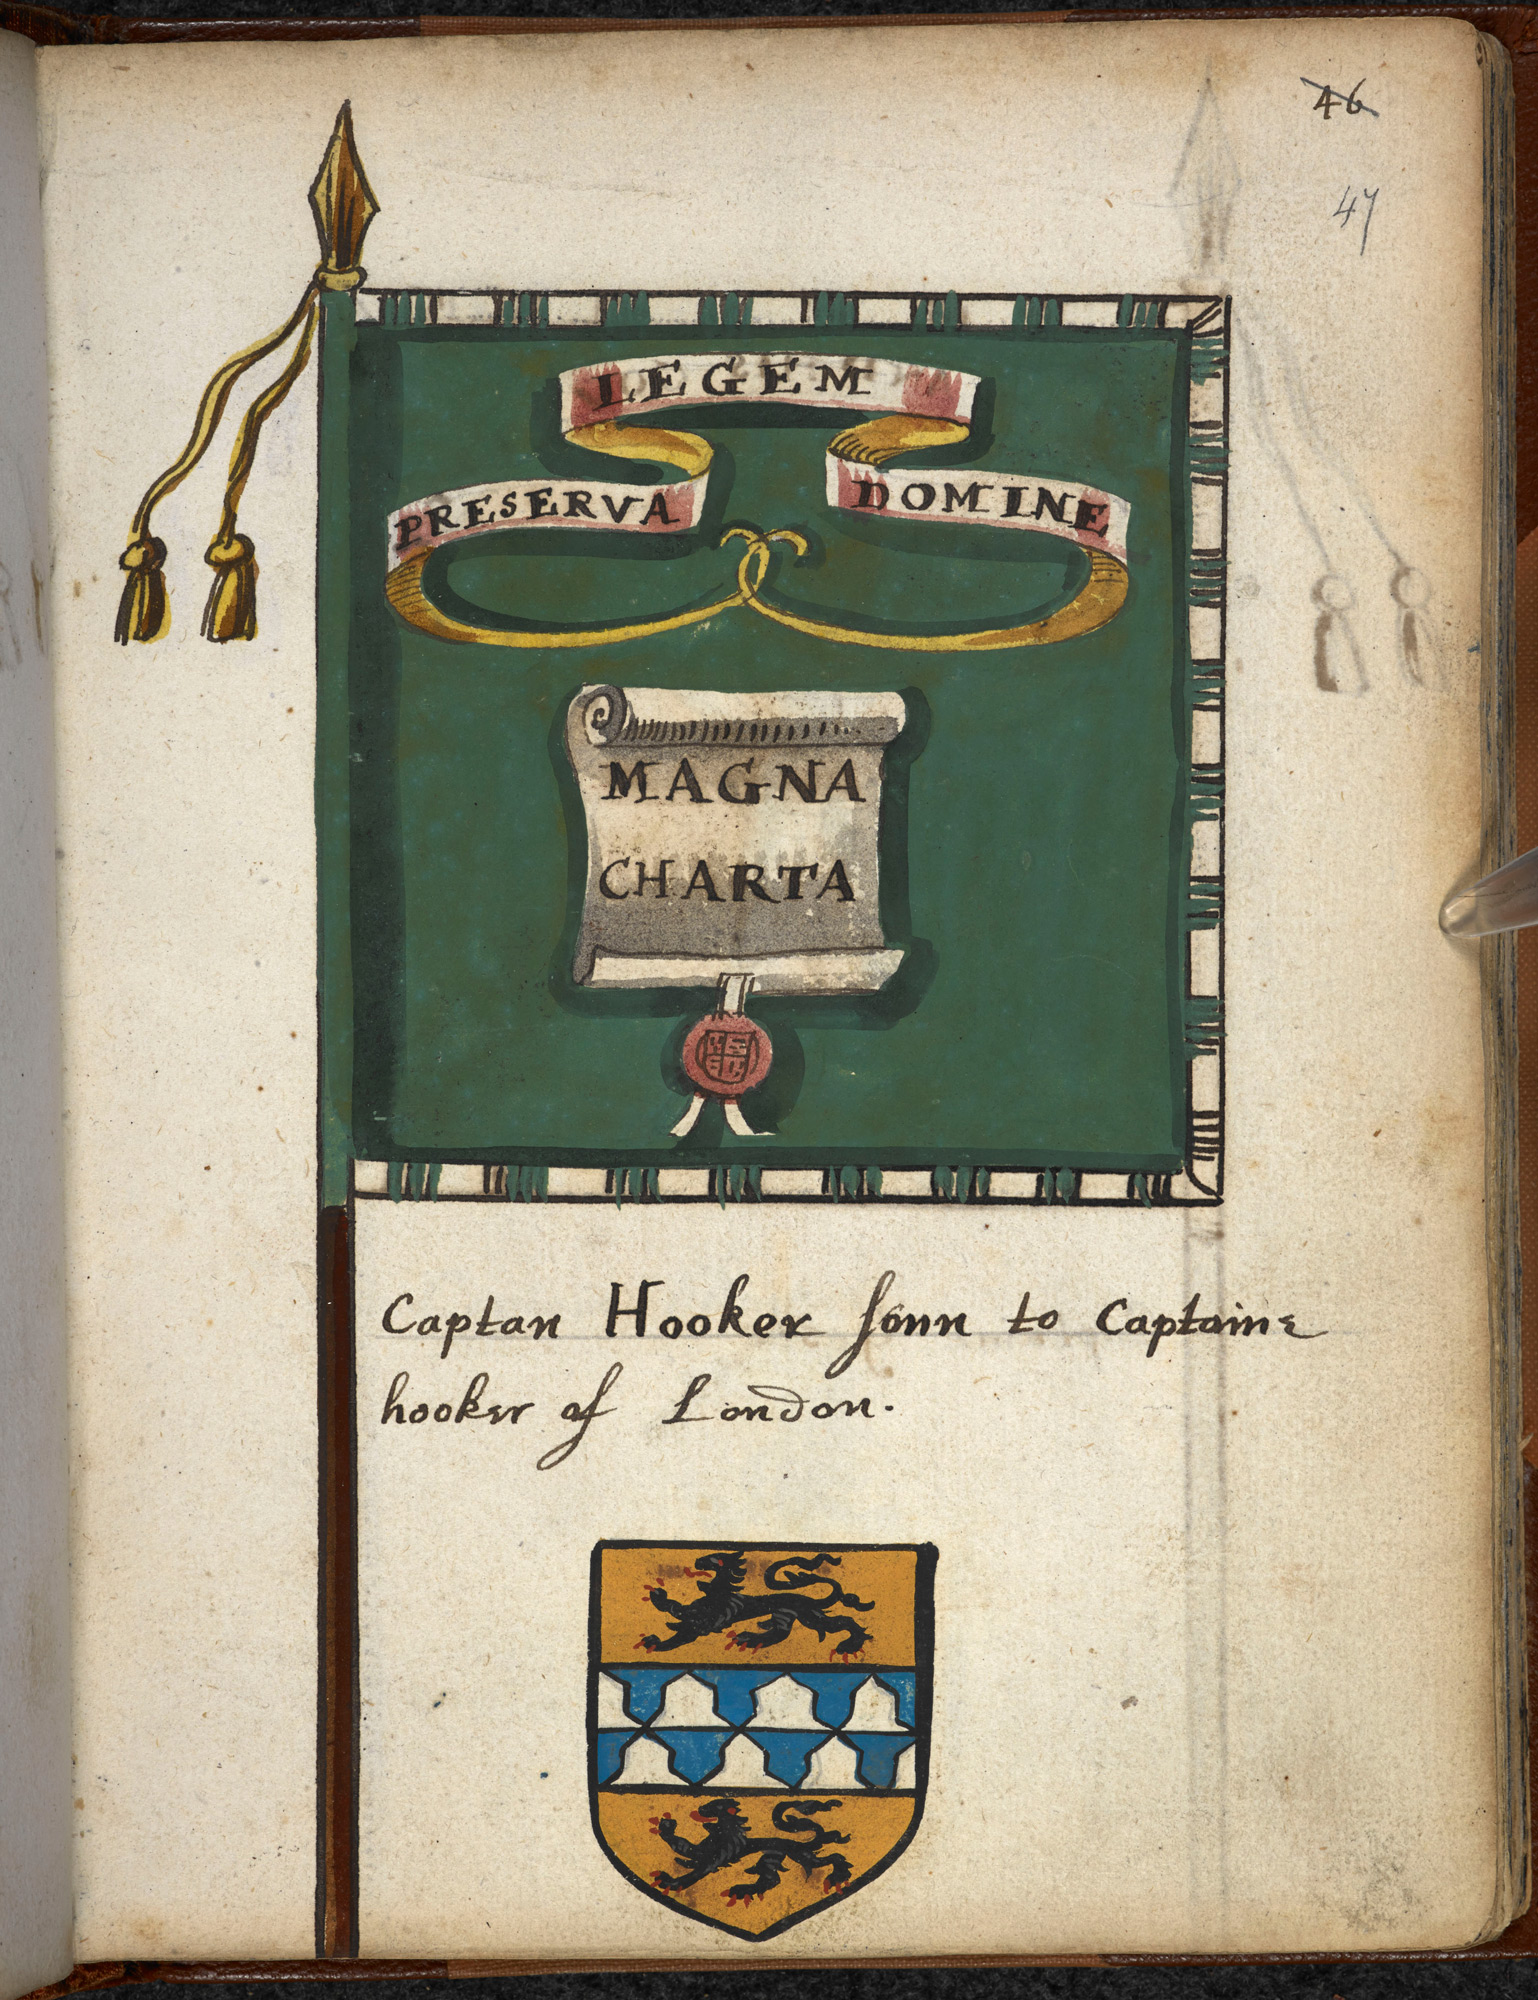 Sketches of regimental banners from the English Civil Wars